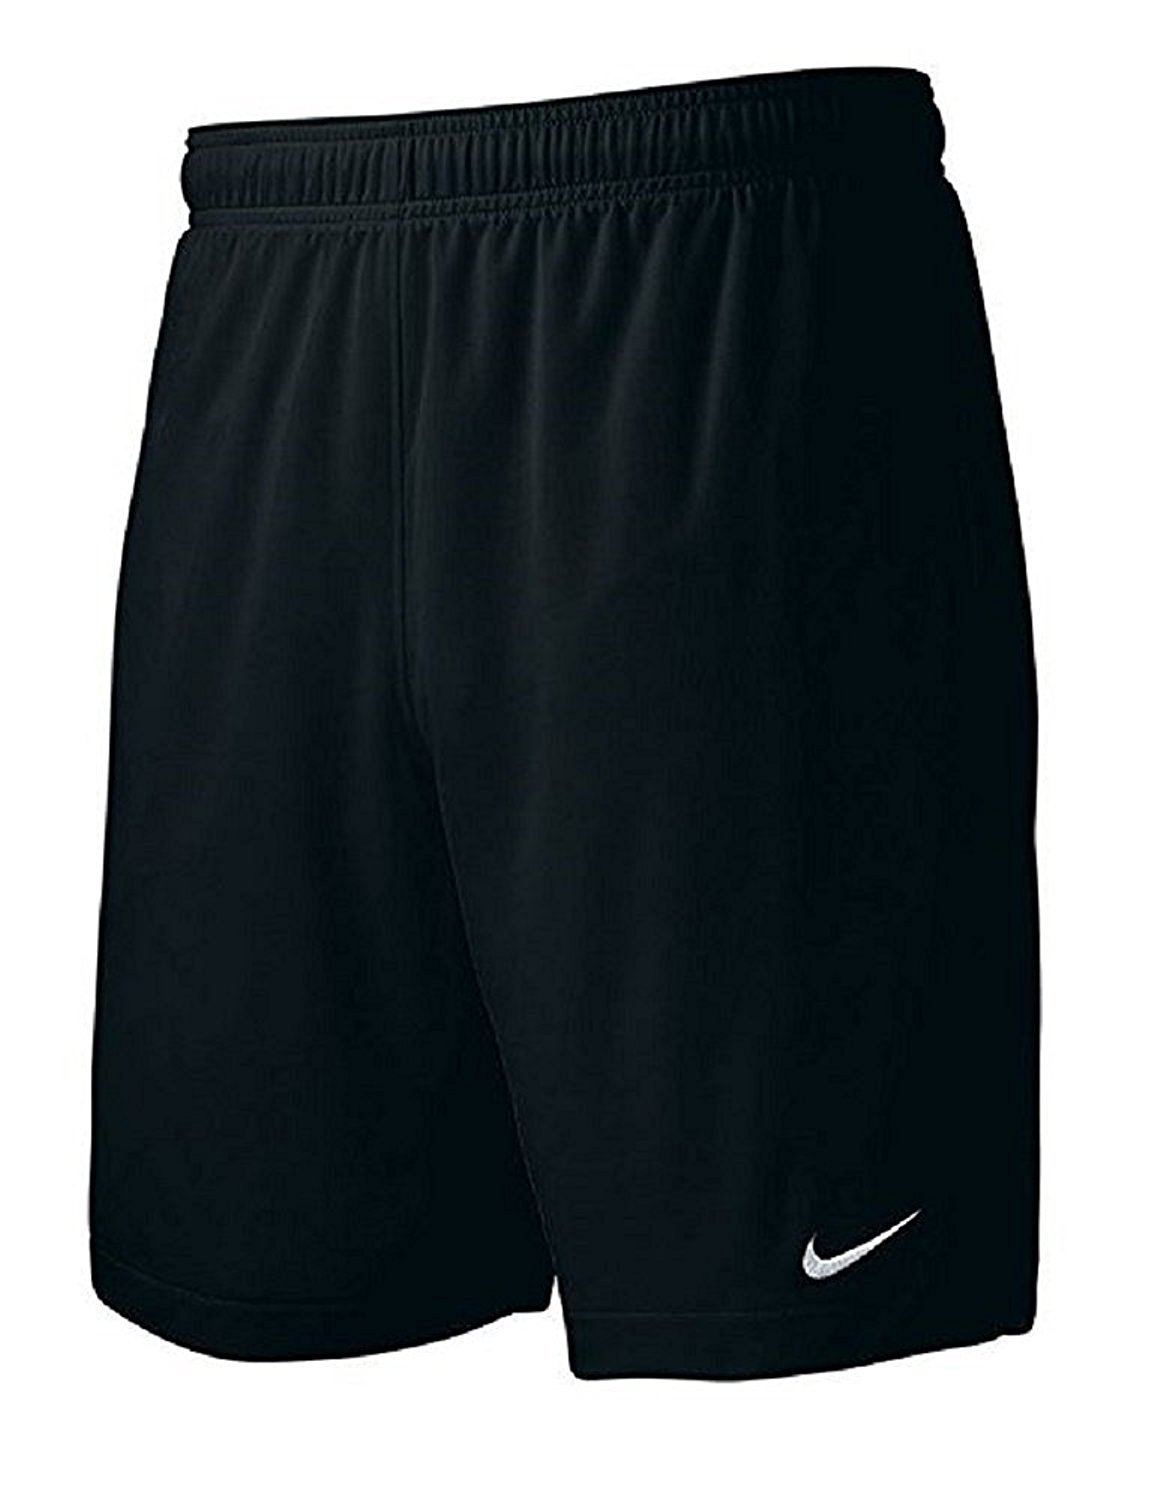 Performance shorts are perfect for all your moves on the